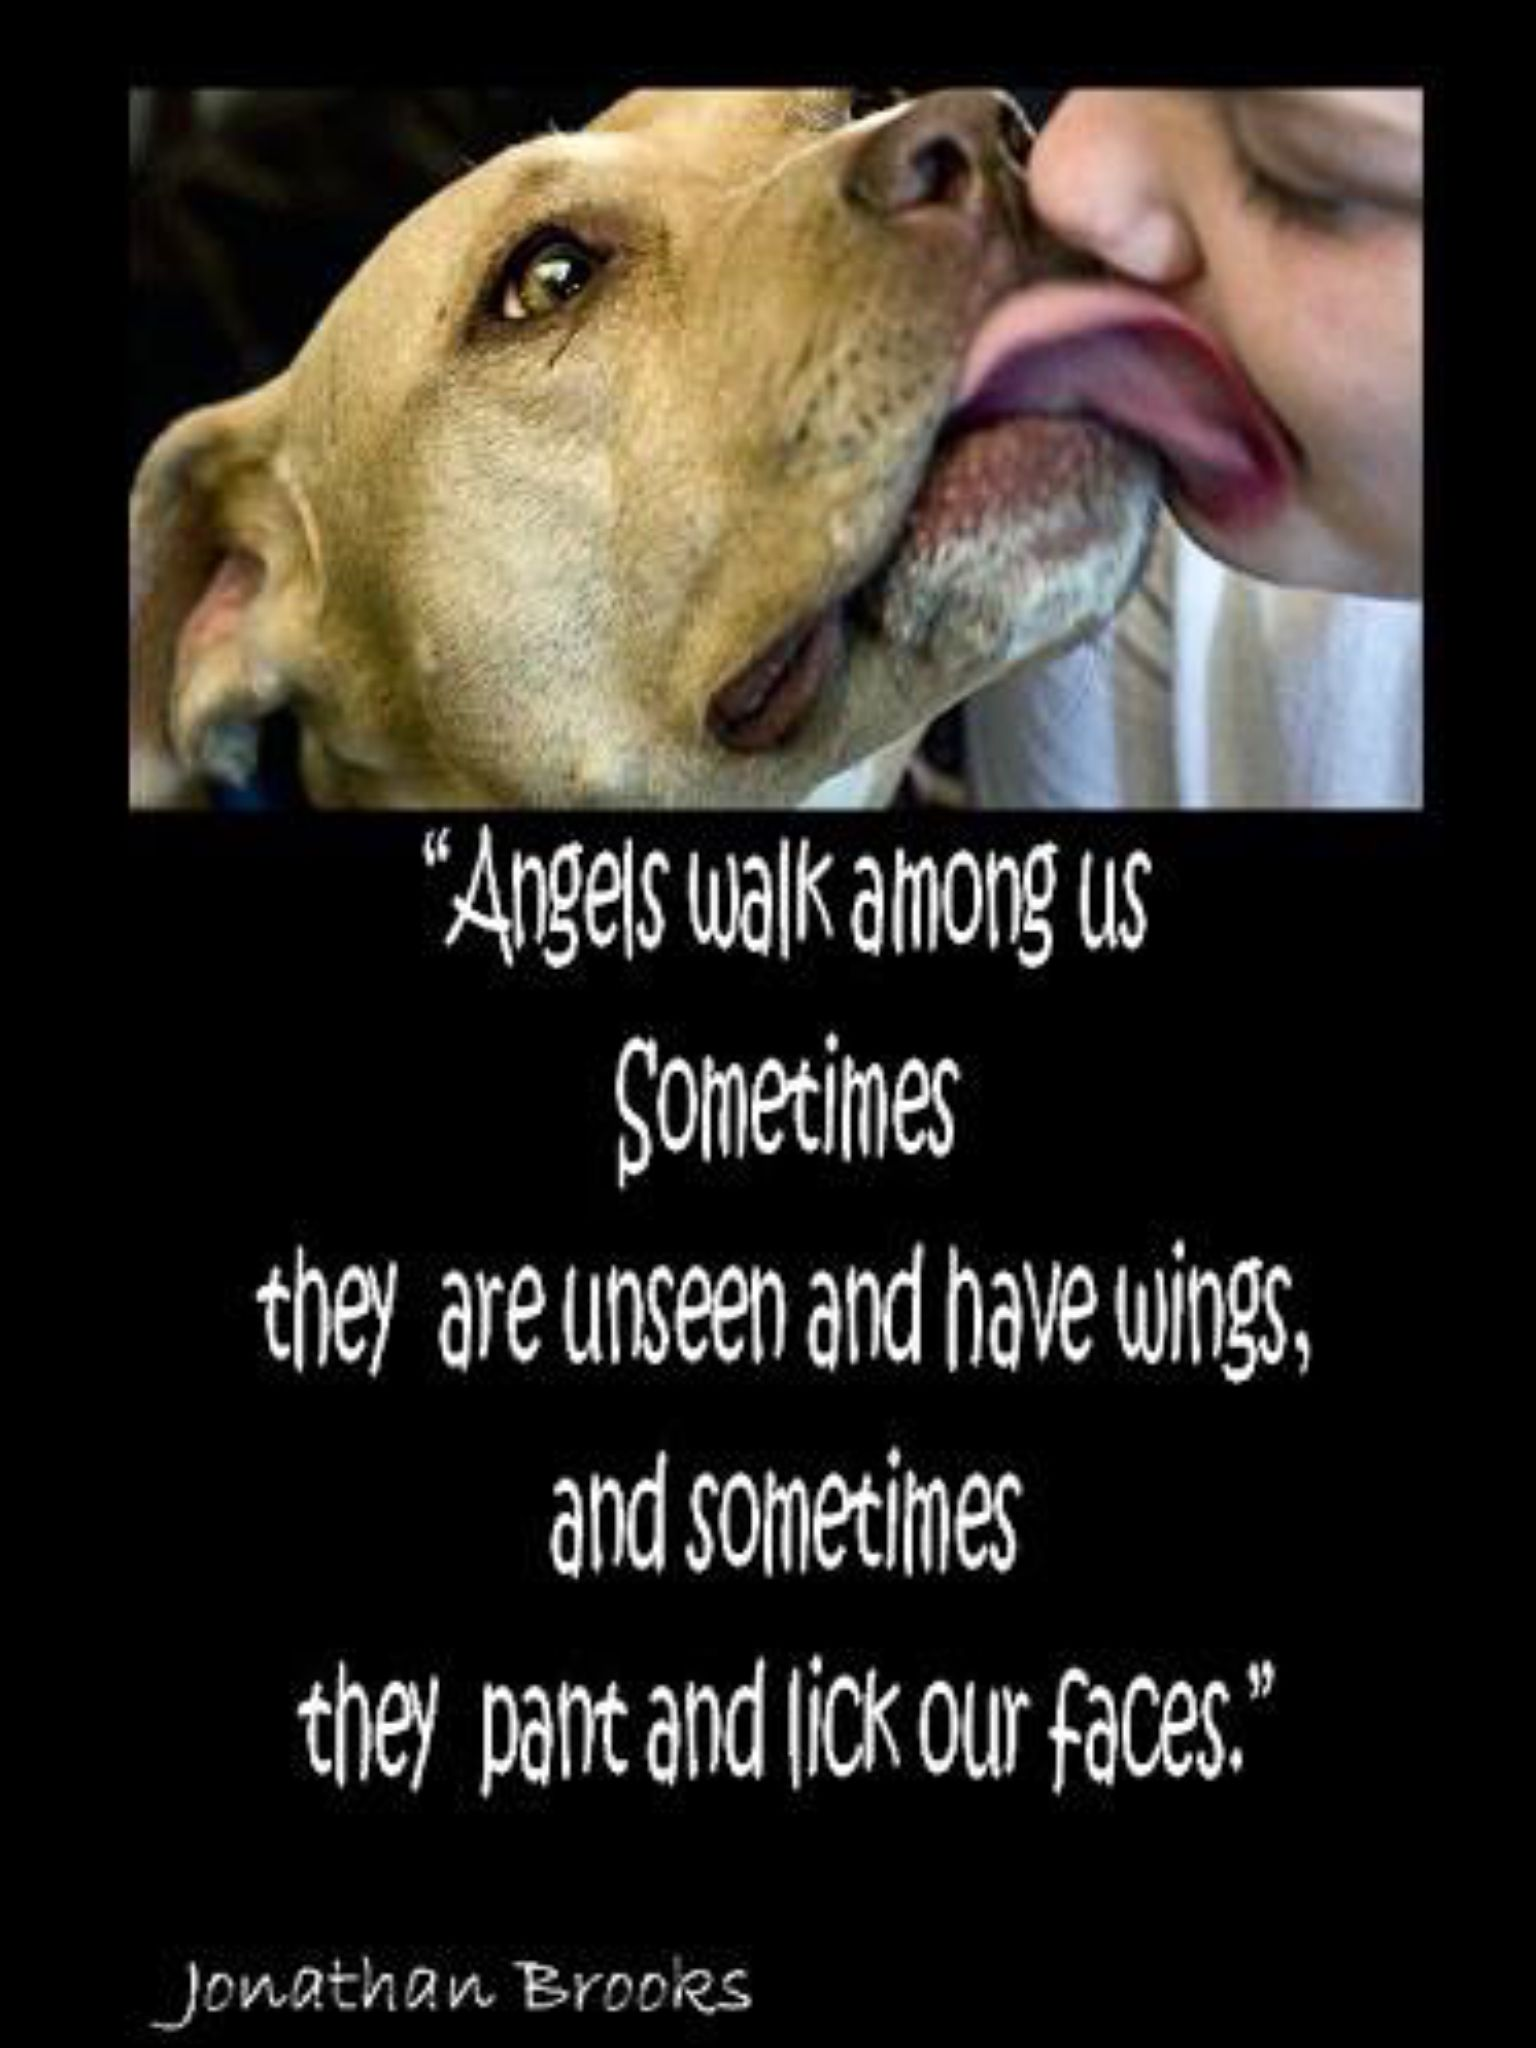 Love Animal Quotes Angels  Cats & Dogs  Pinterest  Angel Dog And Animal